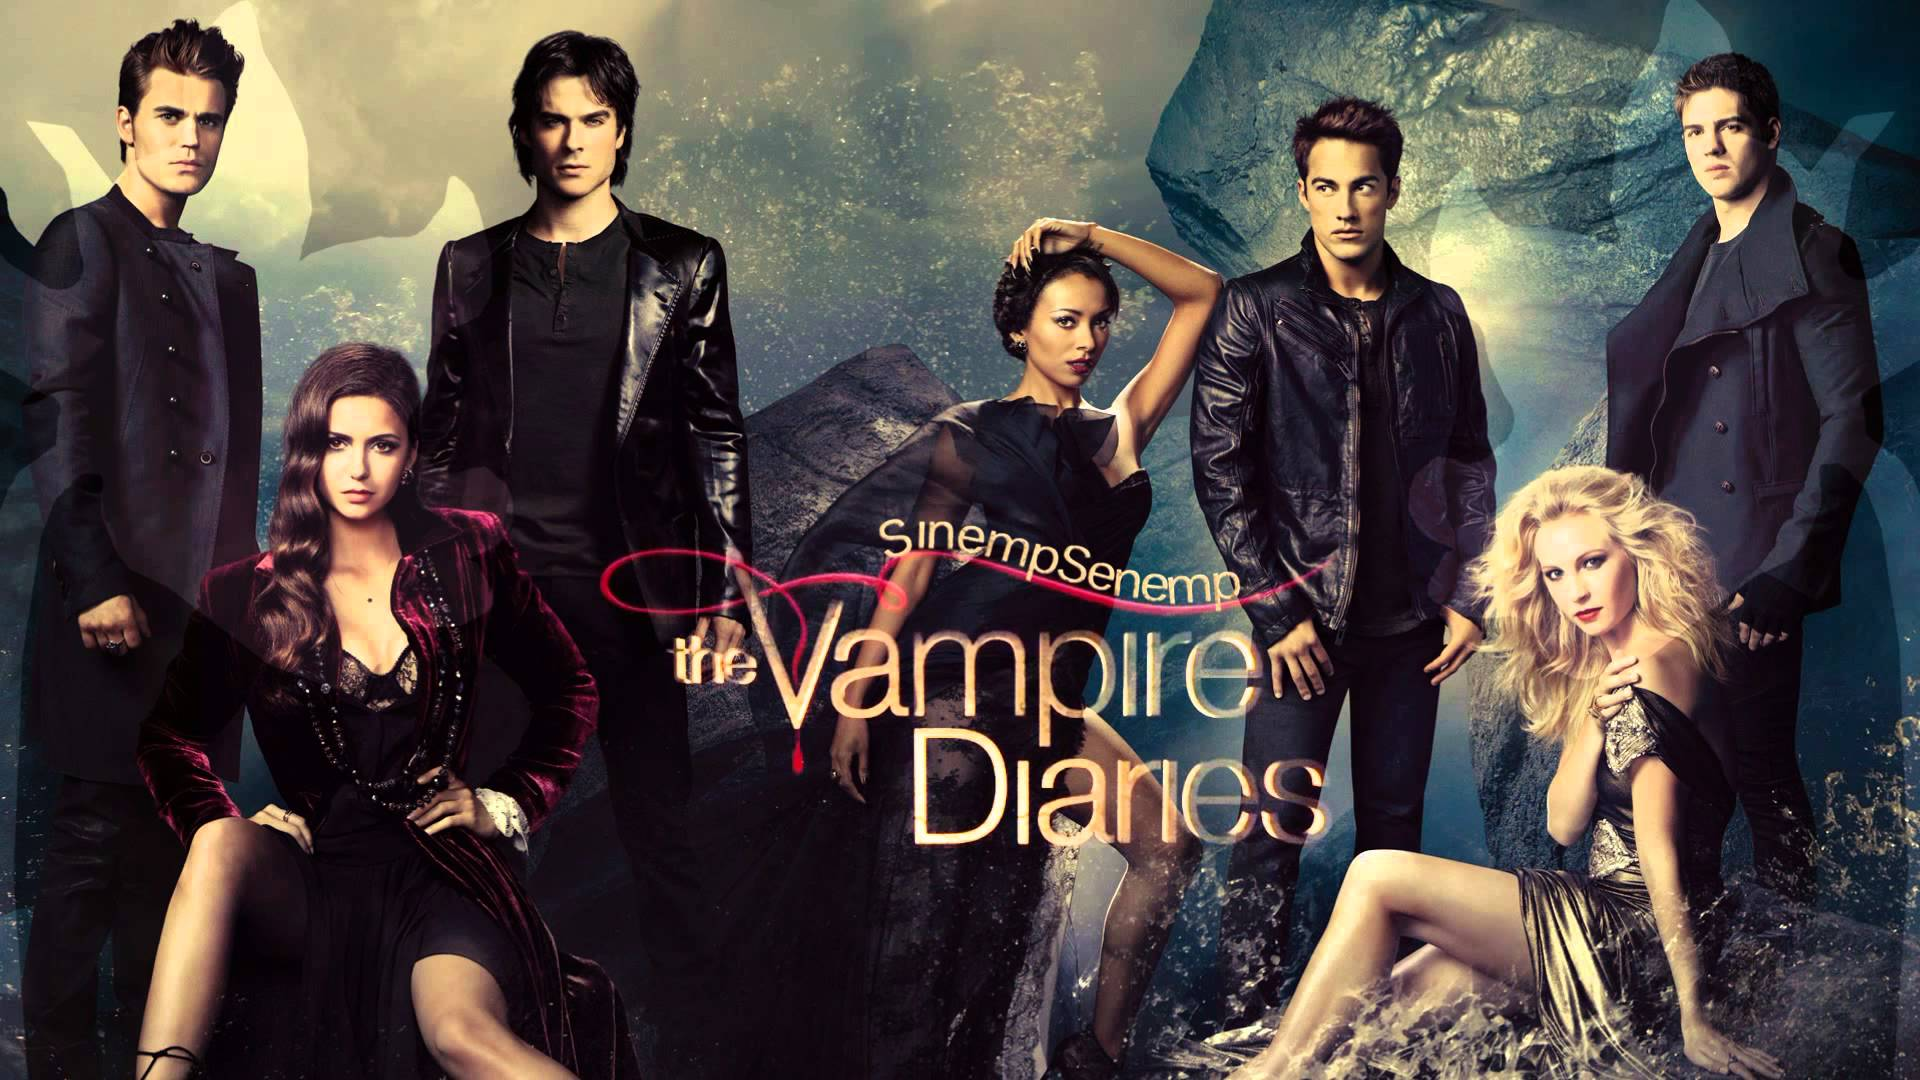 The Vampire Diaries - Episode Guide - TV.com